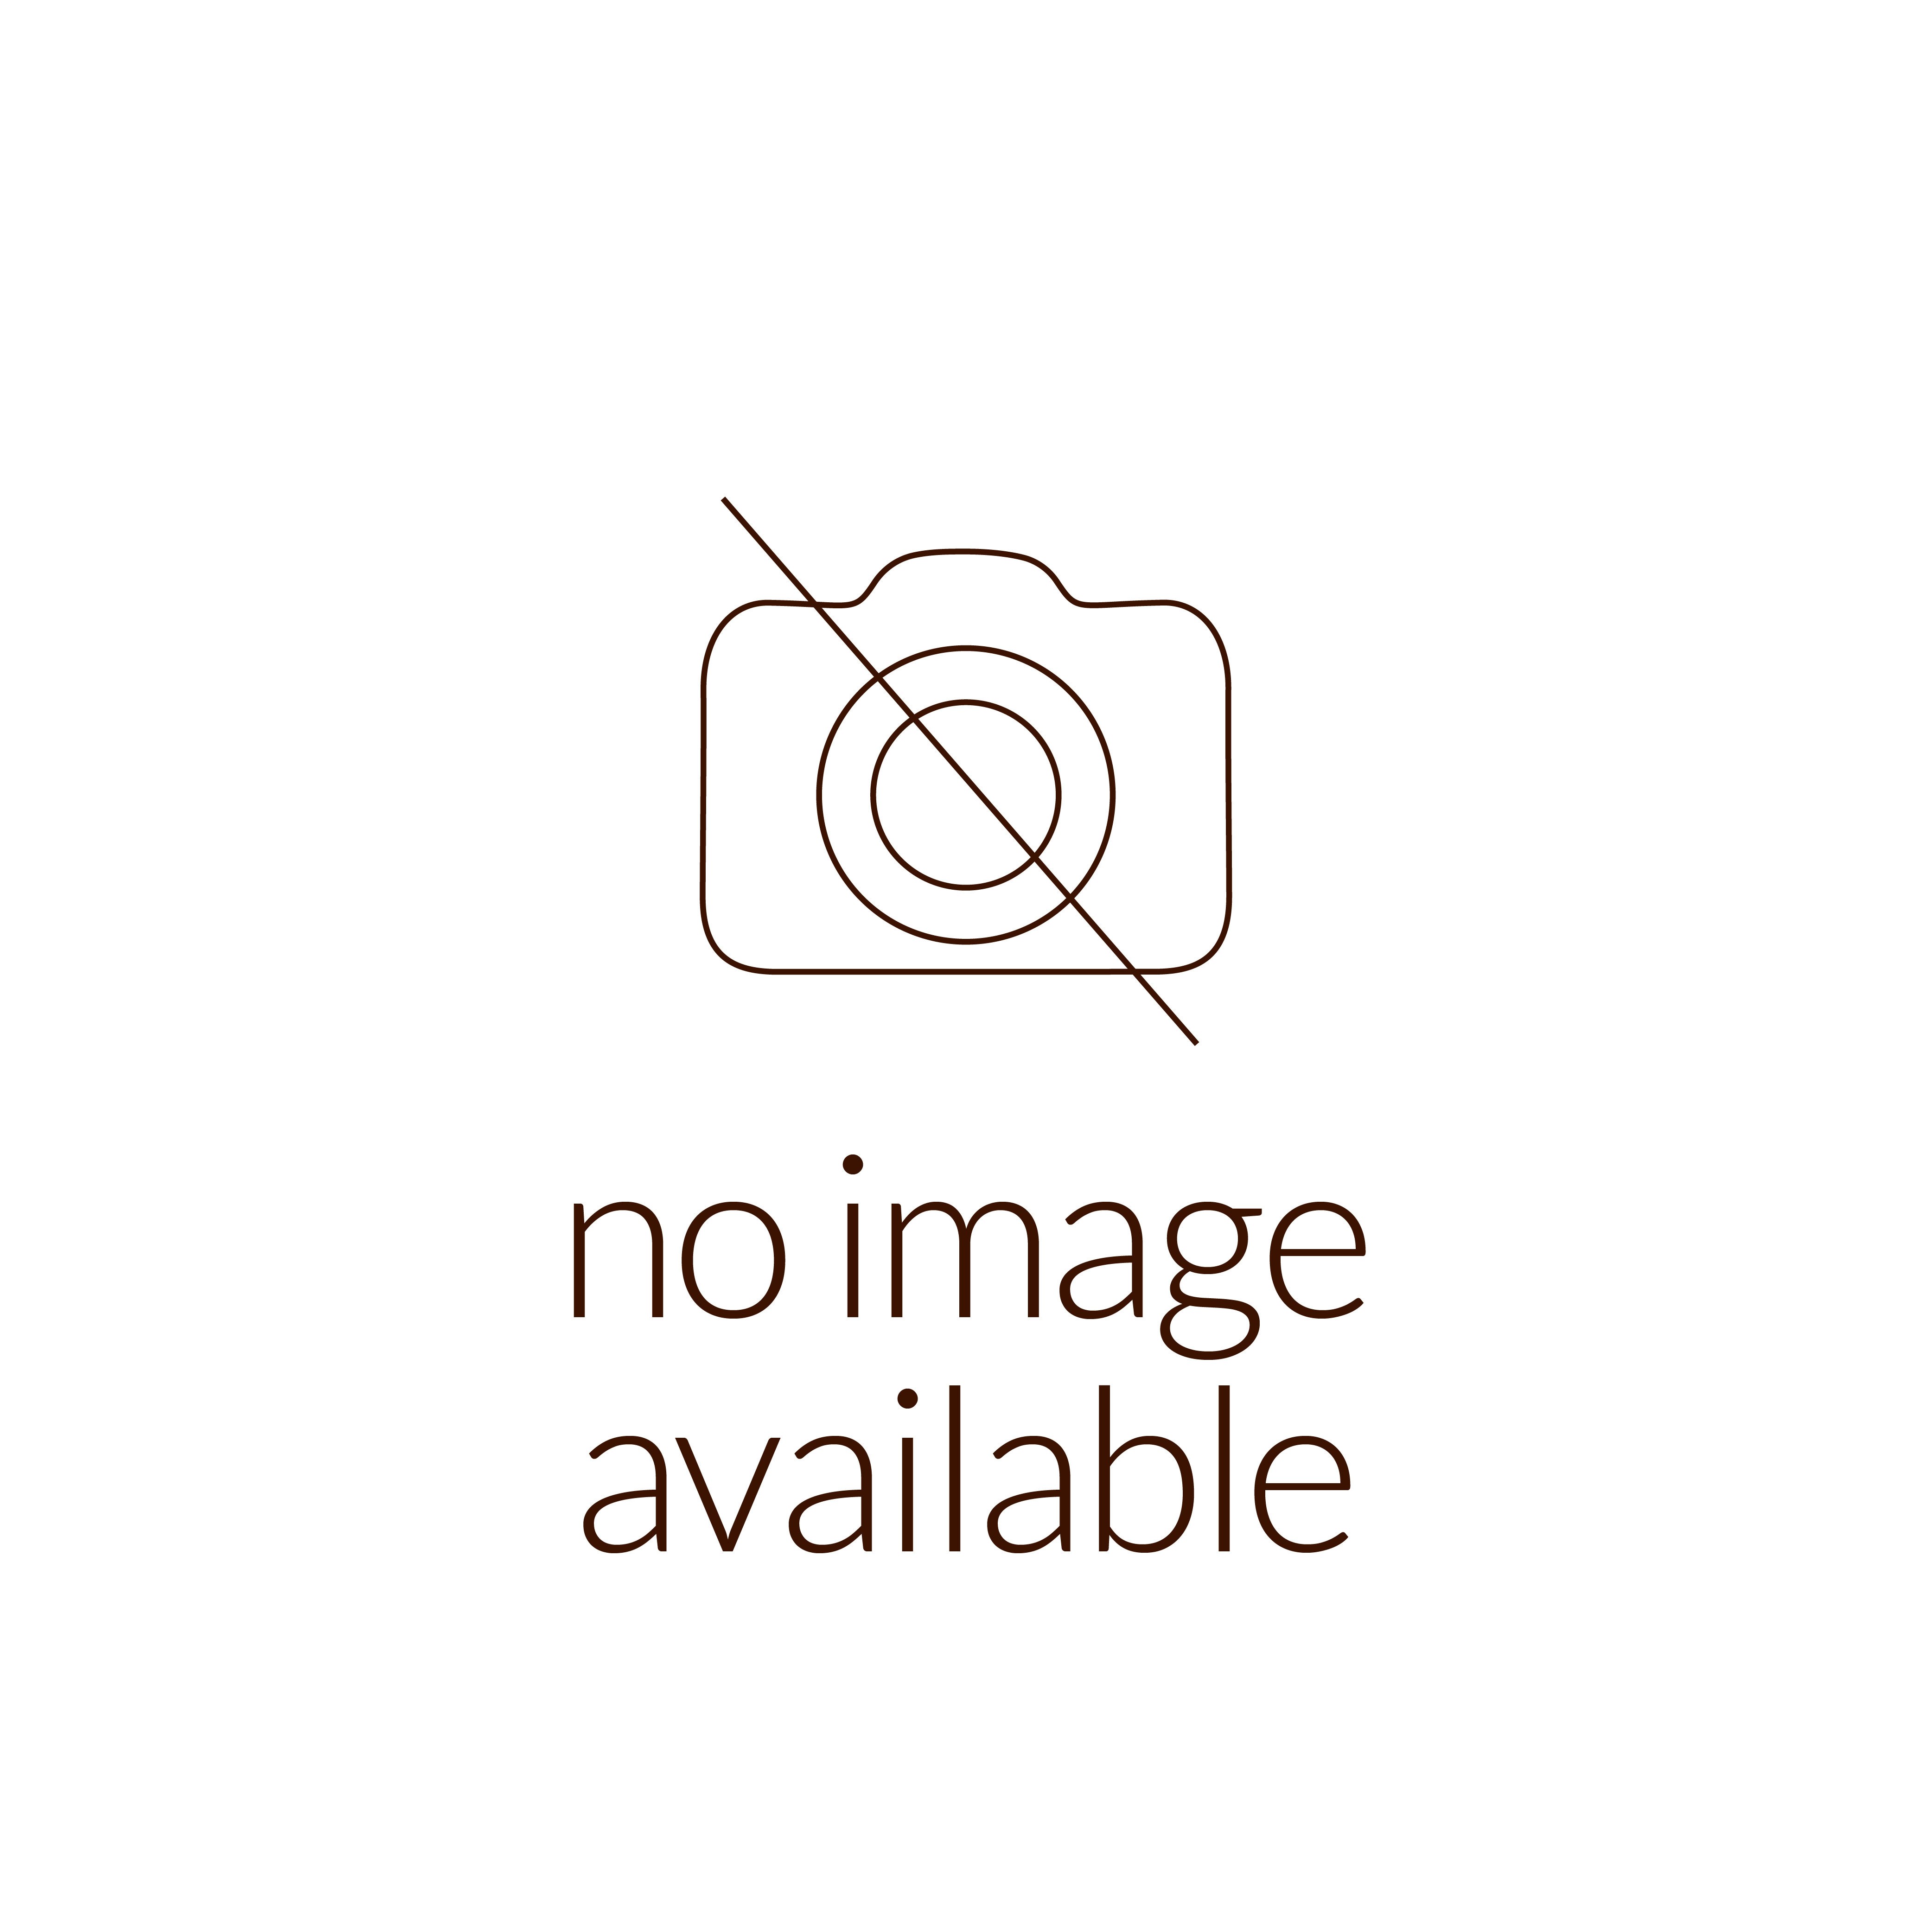 Five Israel Pounds